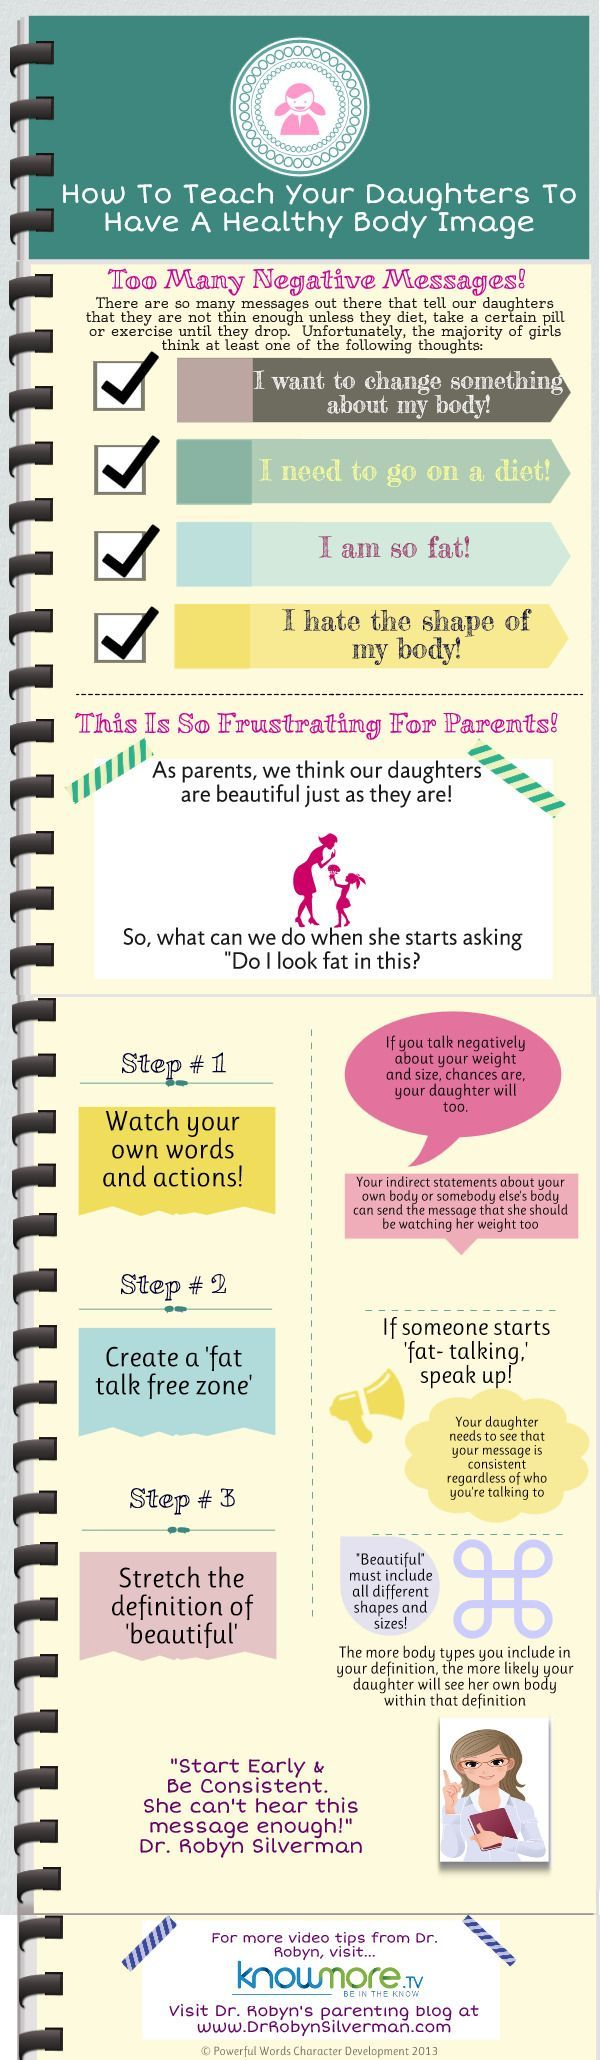 How to teach your daughters to have a healthy body image. This is from Dr. Robyn Silverman, child development specialist and creator of the Powerful Words Character system that we use at Sidekicks Family Martial Arts Center, located in FishHawk (http://www.lithiamartialarts.com)